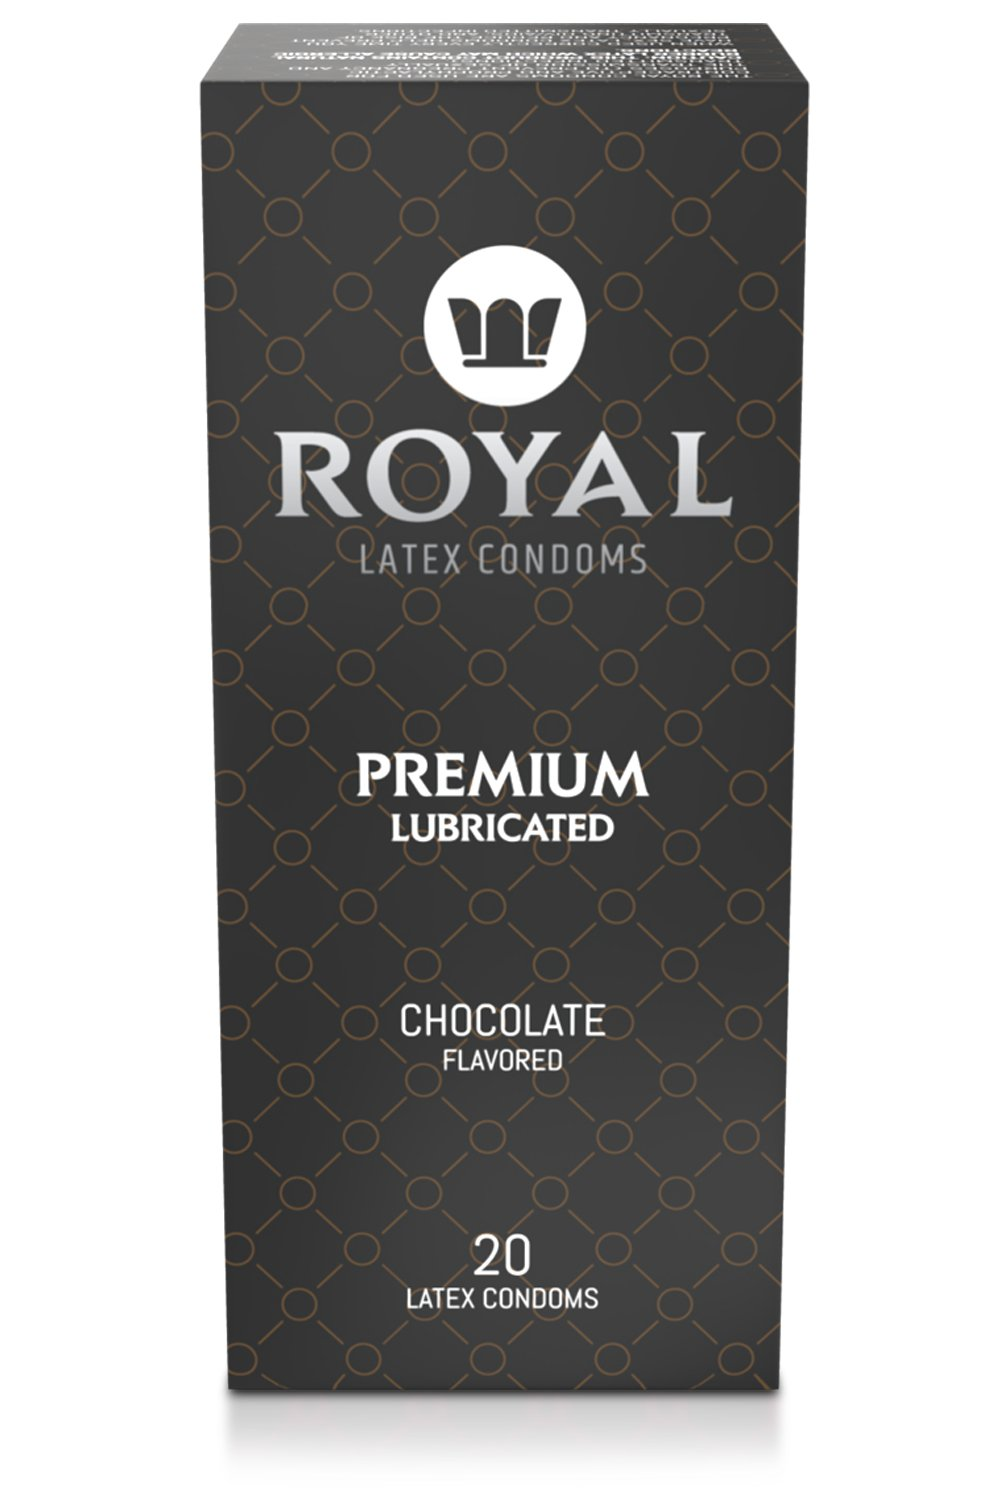 Condoms Bulk, Chocolate Flavored, Ultra Thin, All Natural, Organic, Vegan, Gluten Free Latex Covered in Edible Water Based Lube for Long Lasting Extended Pleasure, 20 Count by Royal